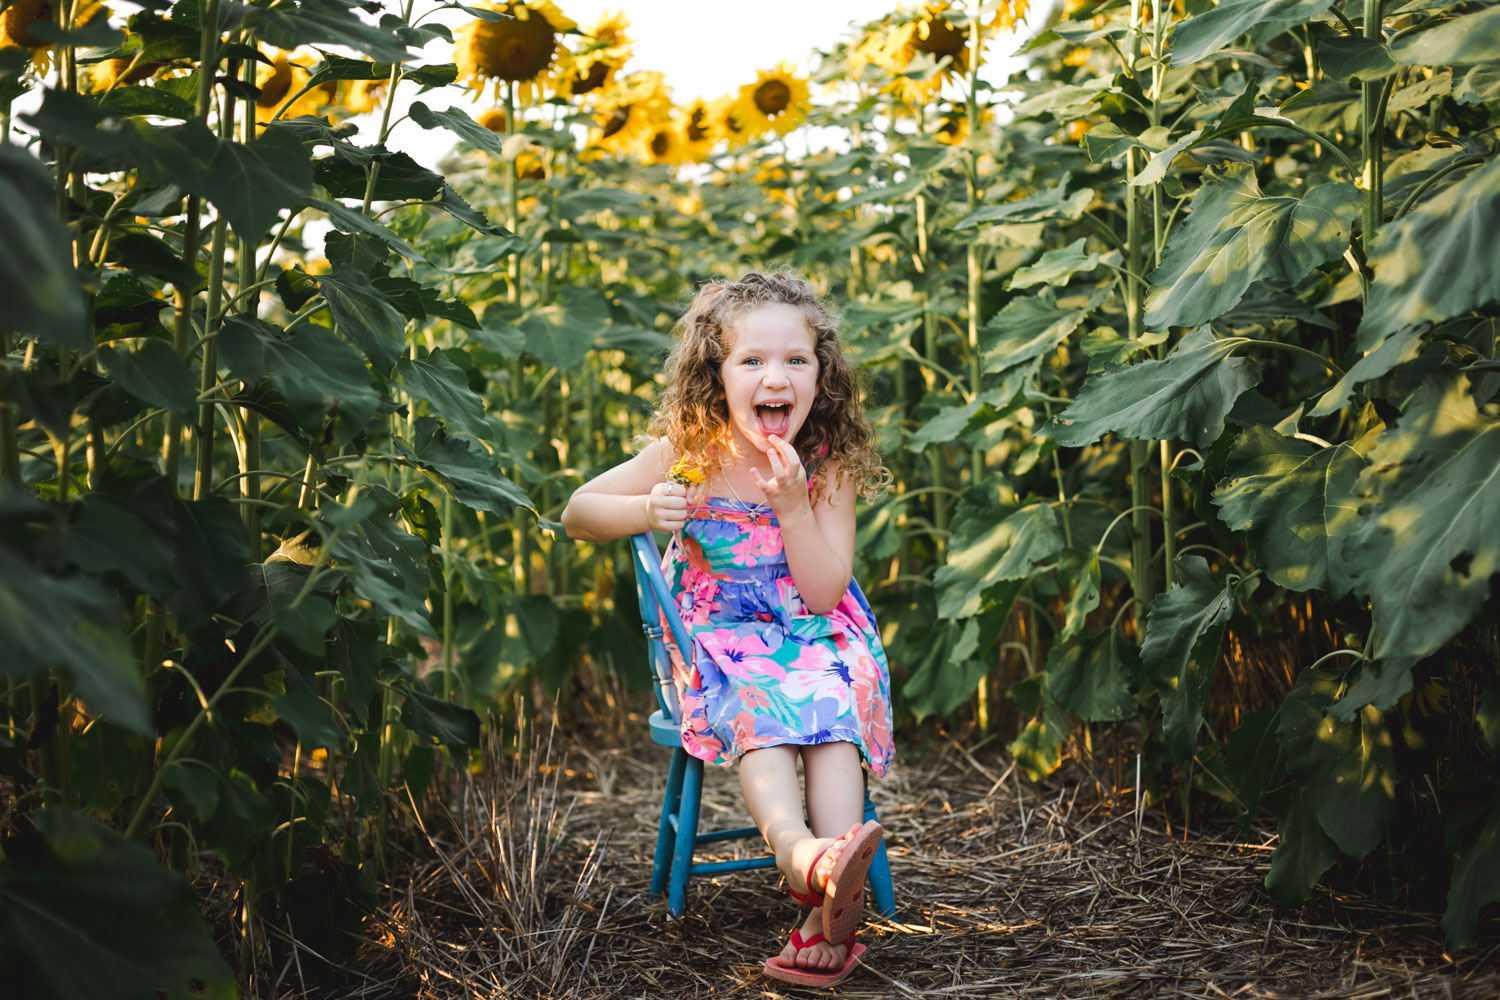 Girl sitting in the sunflower field at Britt's Farm and Garden Acres during her family's fall photo session in Manhattan, Kansas. Captured by best documentary photographer, Renee McDaniel.